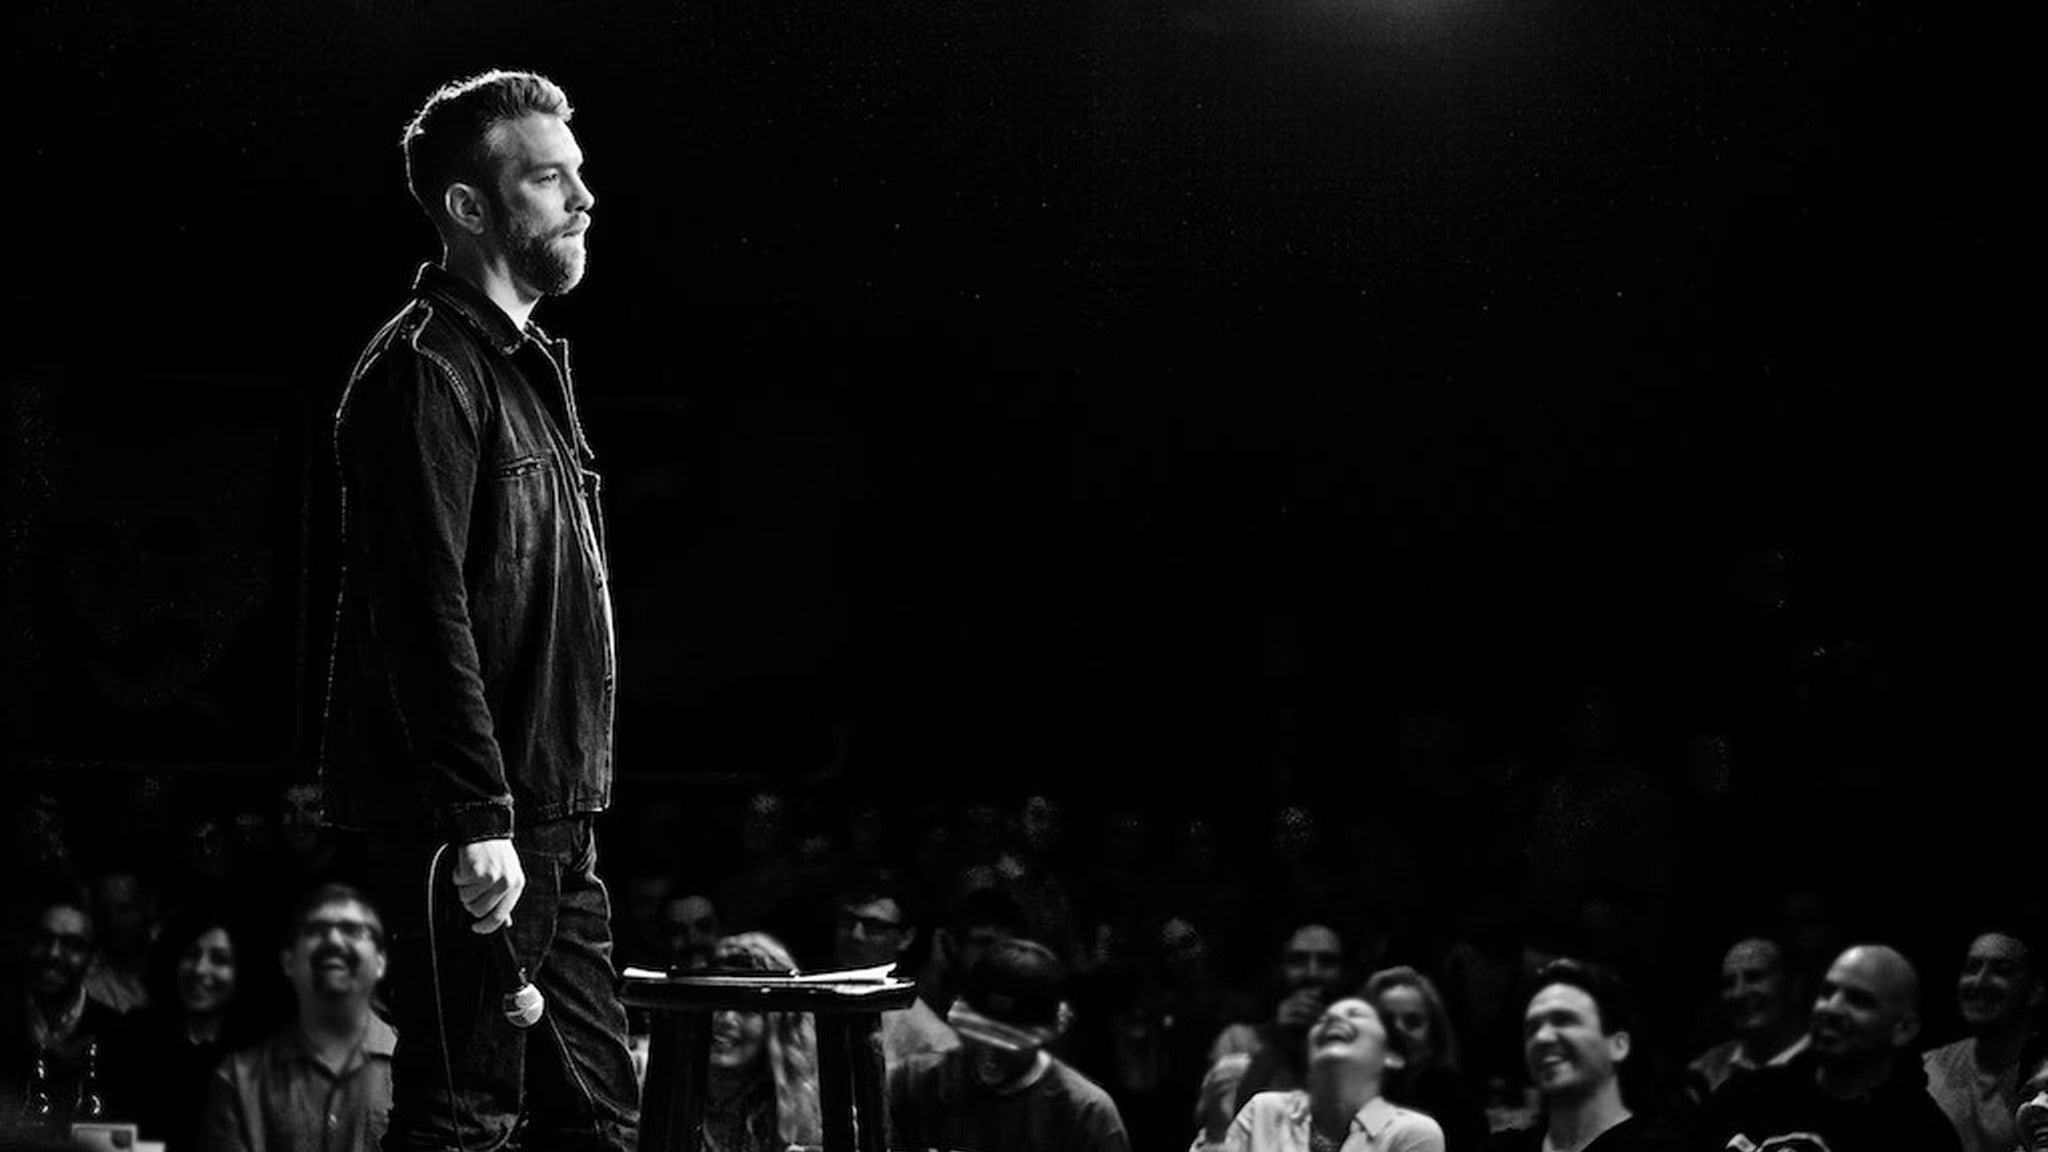 ANTHONY JESELNIK: FUNNY GAMES